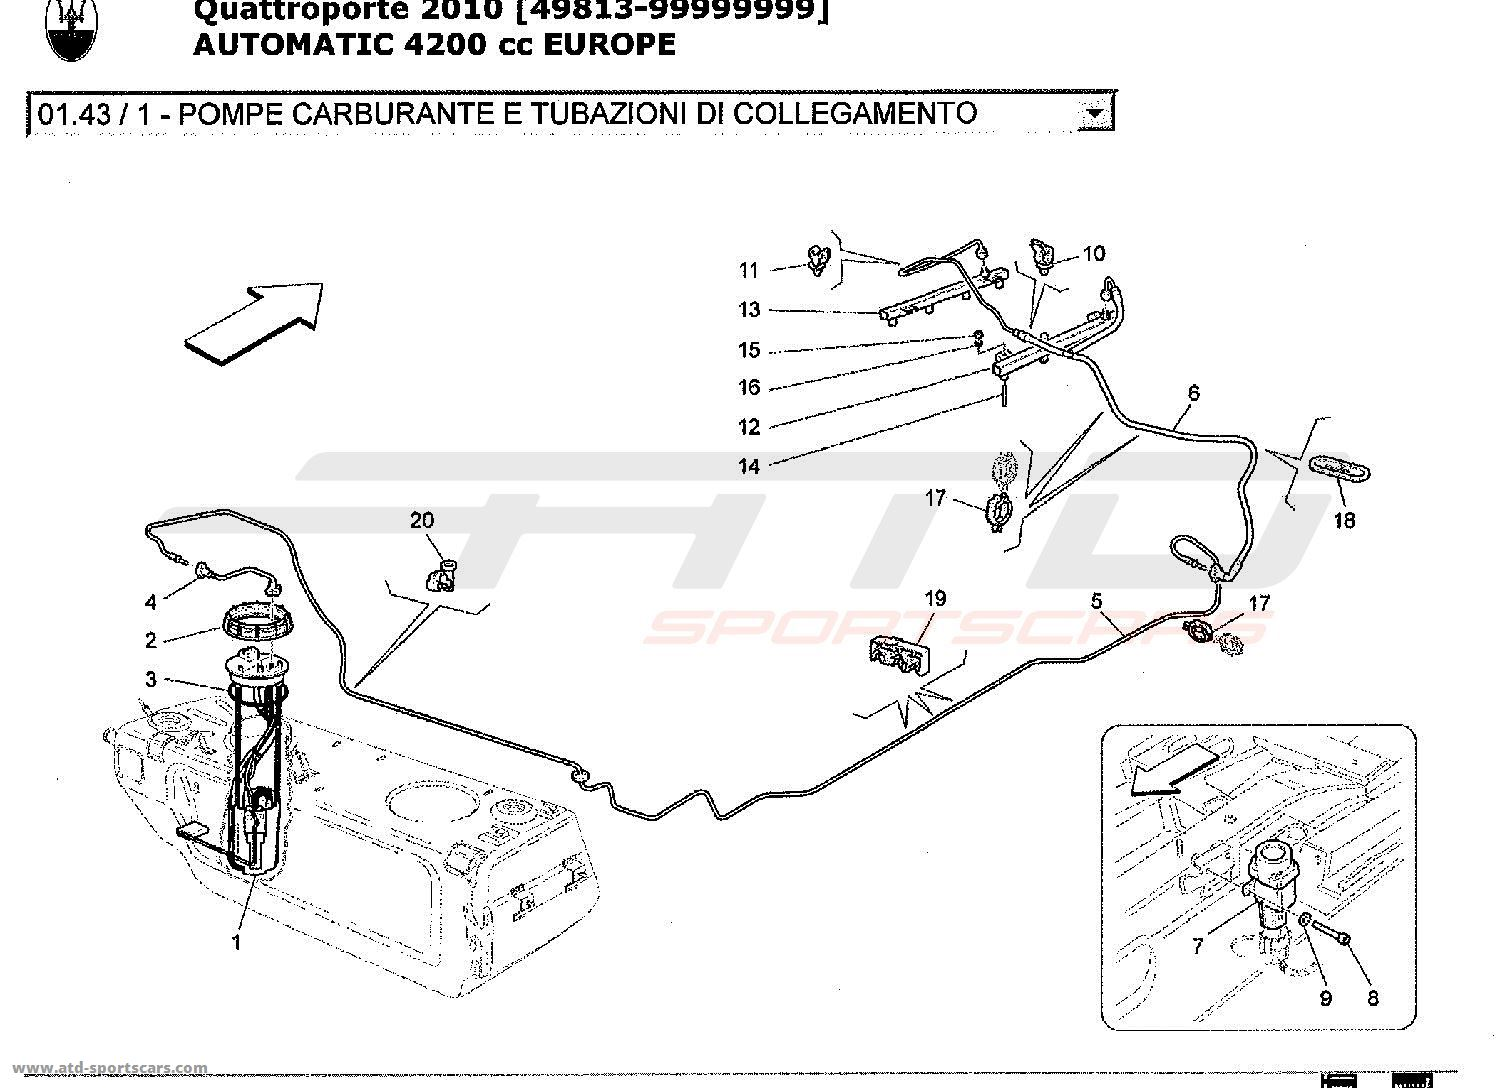 06 Acura Rsx Fuse Box Diagram. Acura. Auto Wiring Diagram